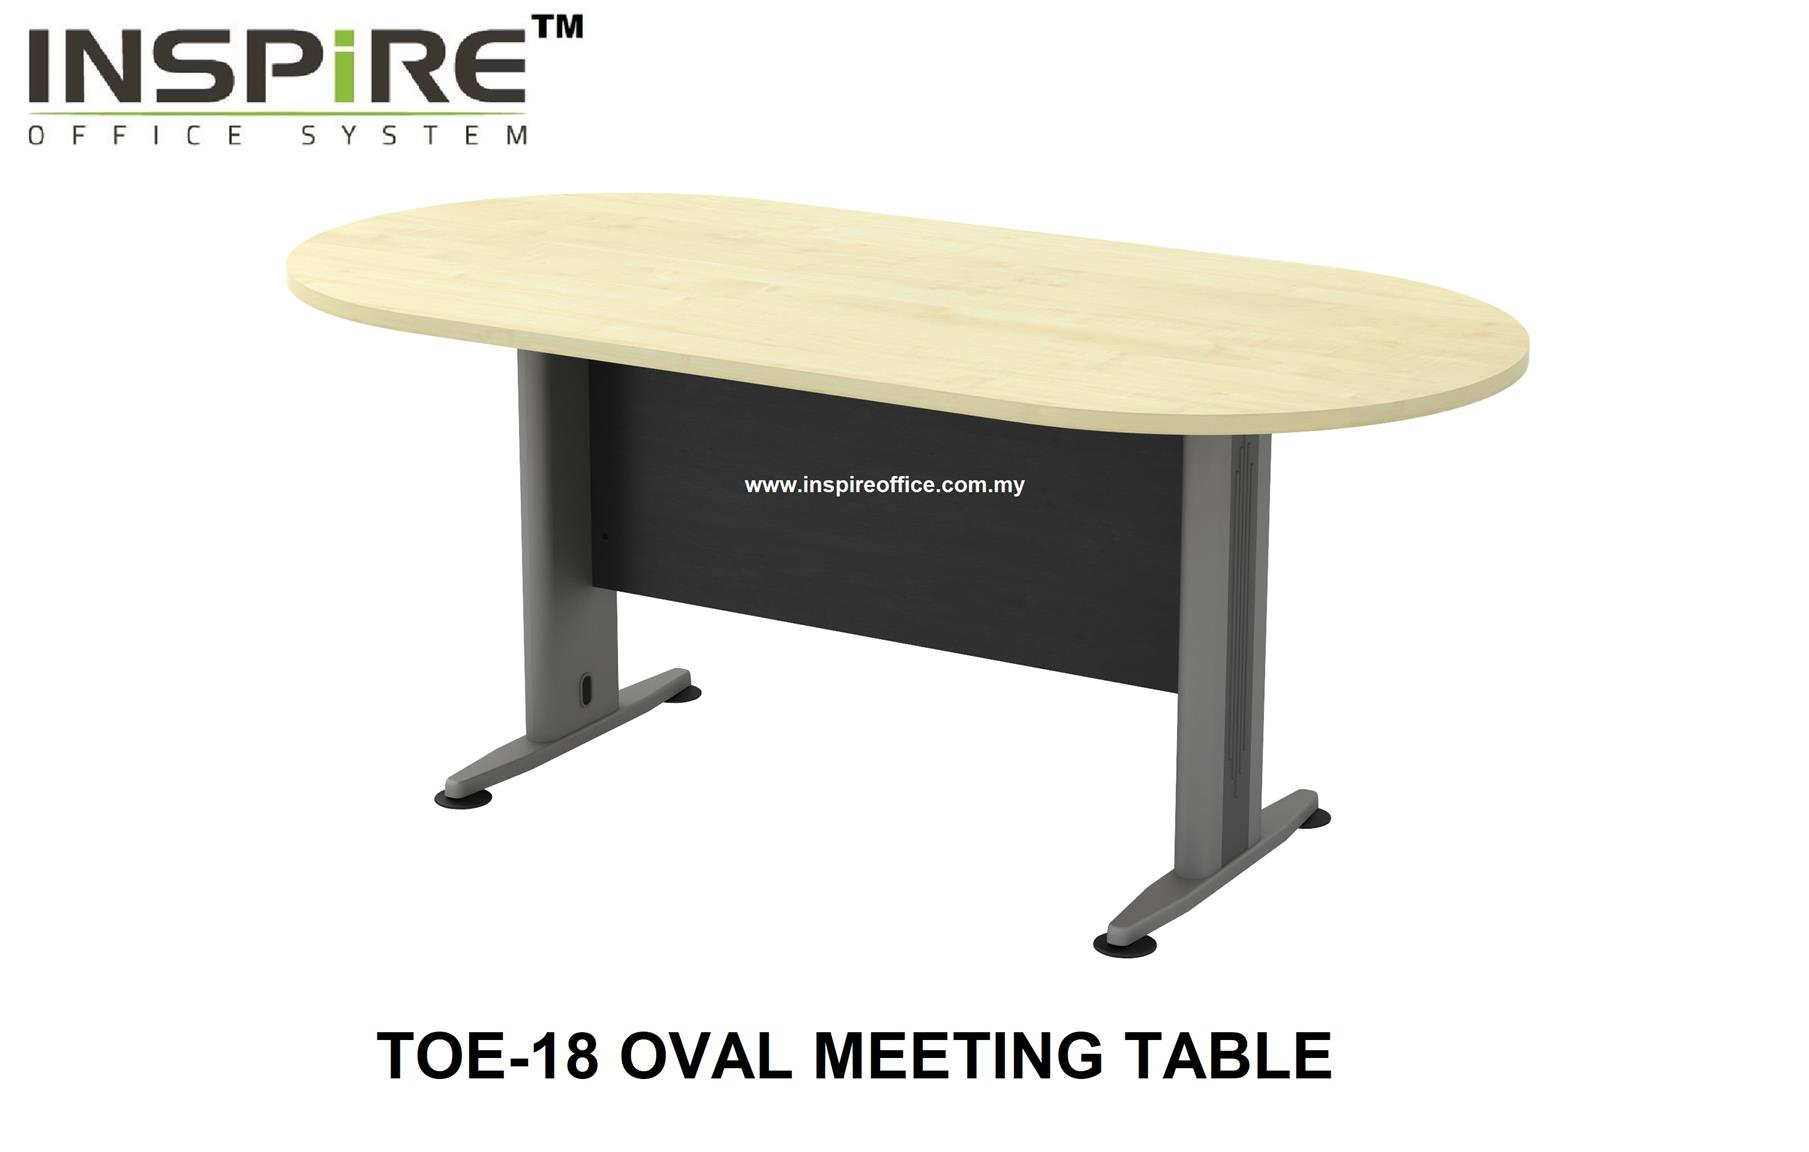 TOE-18 OVAL MEETING TABLE